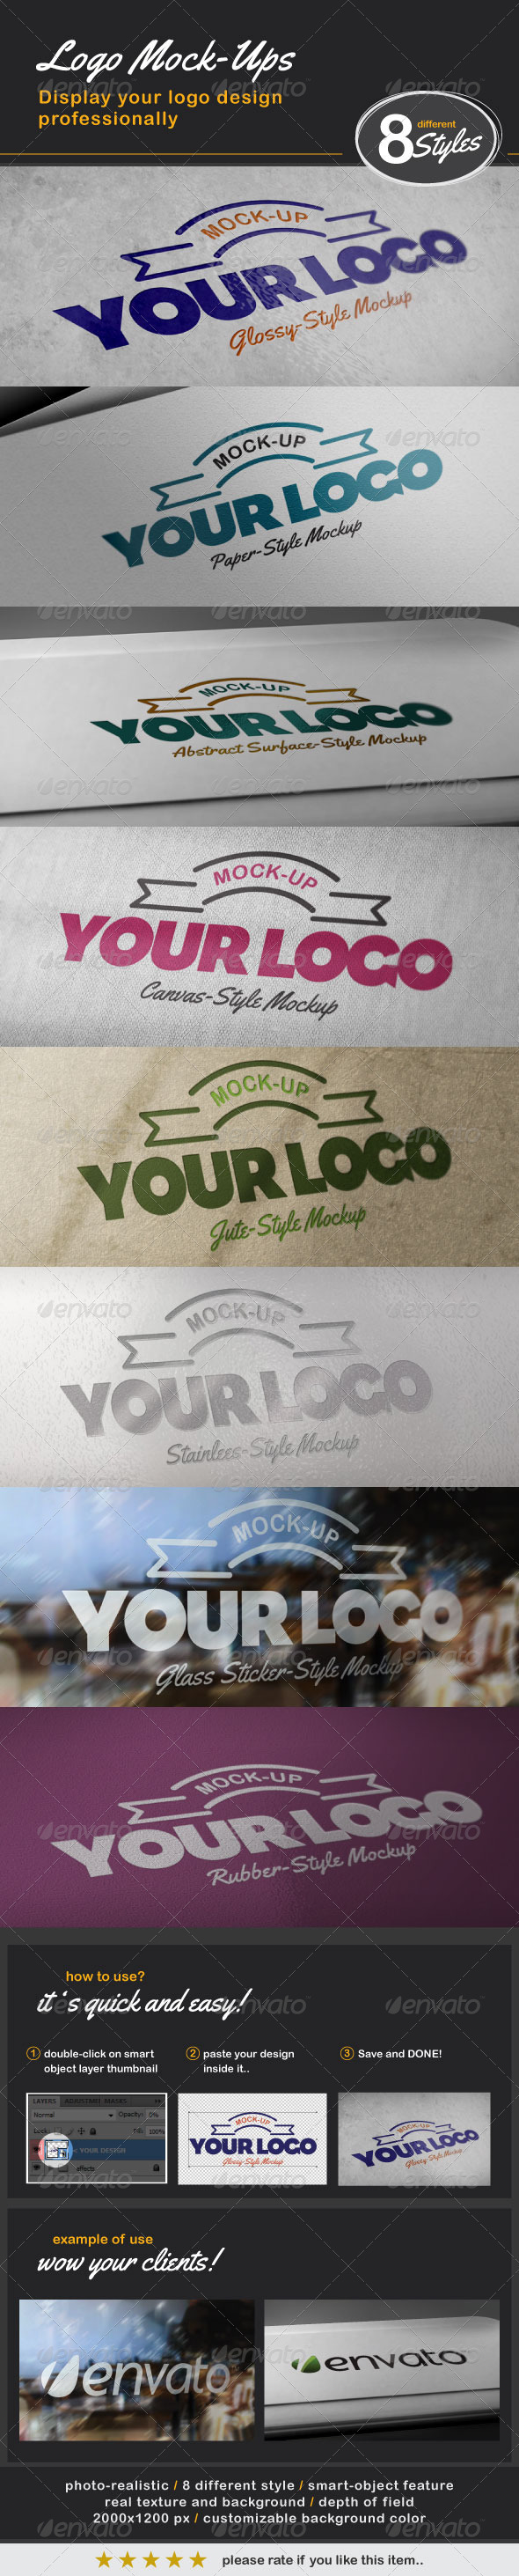 8 Photo-Realistic Logo Mock-ups - Logo Product Mock-Ups